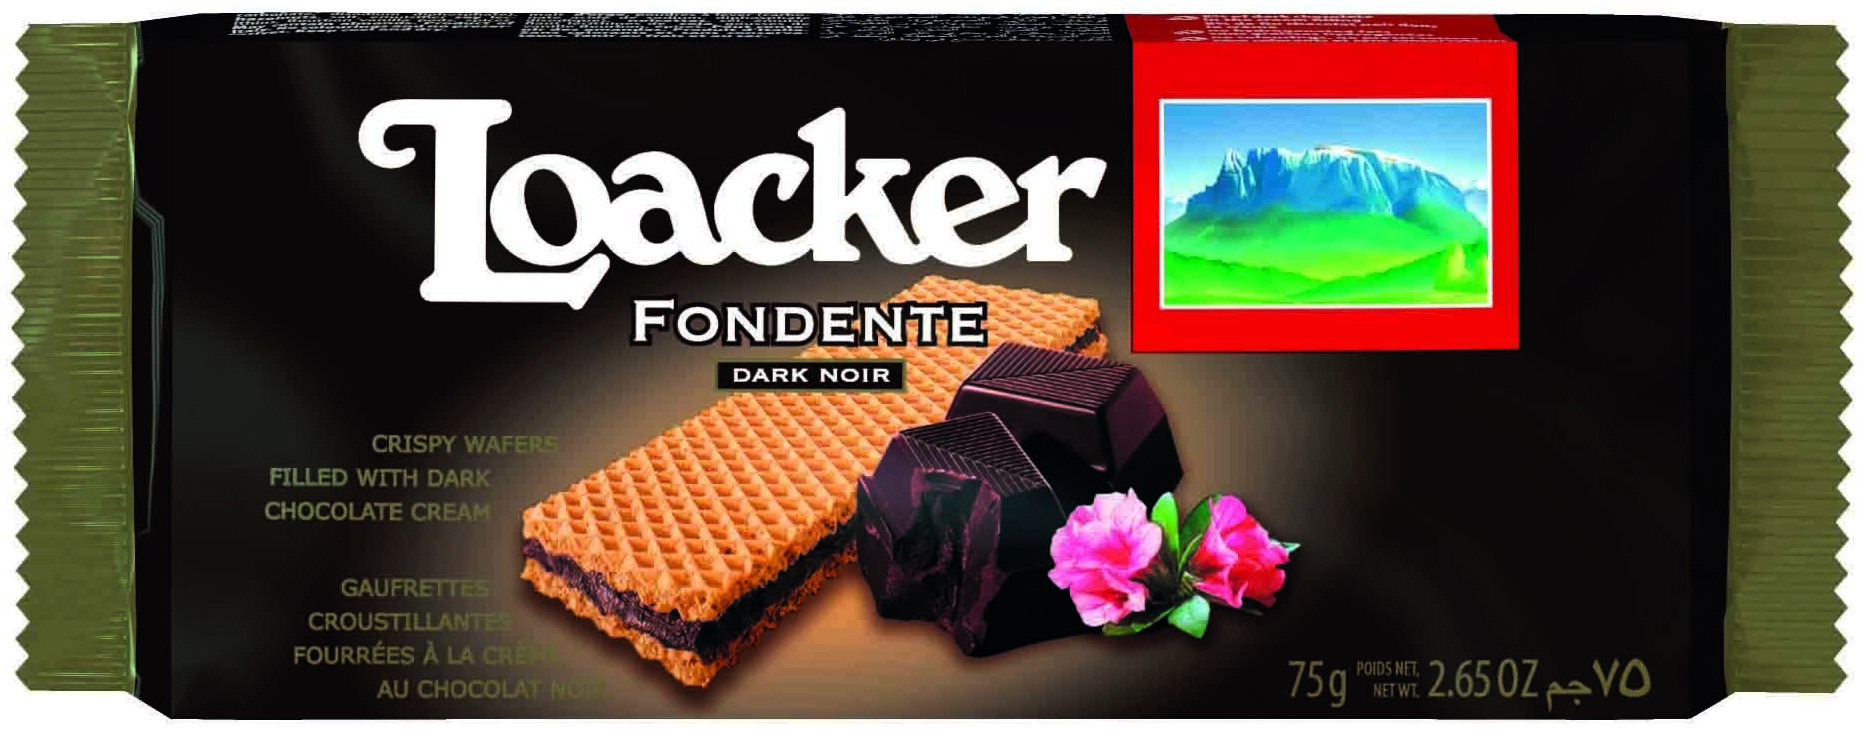 Classic Fondente - Product - fr